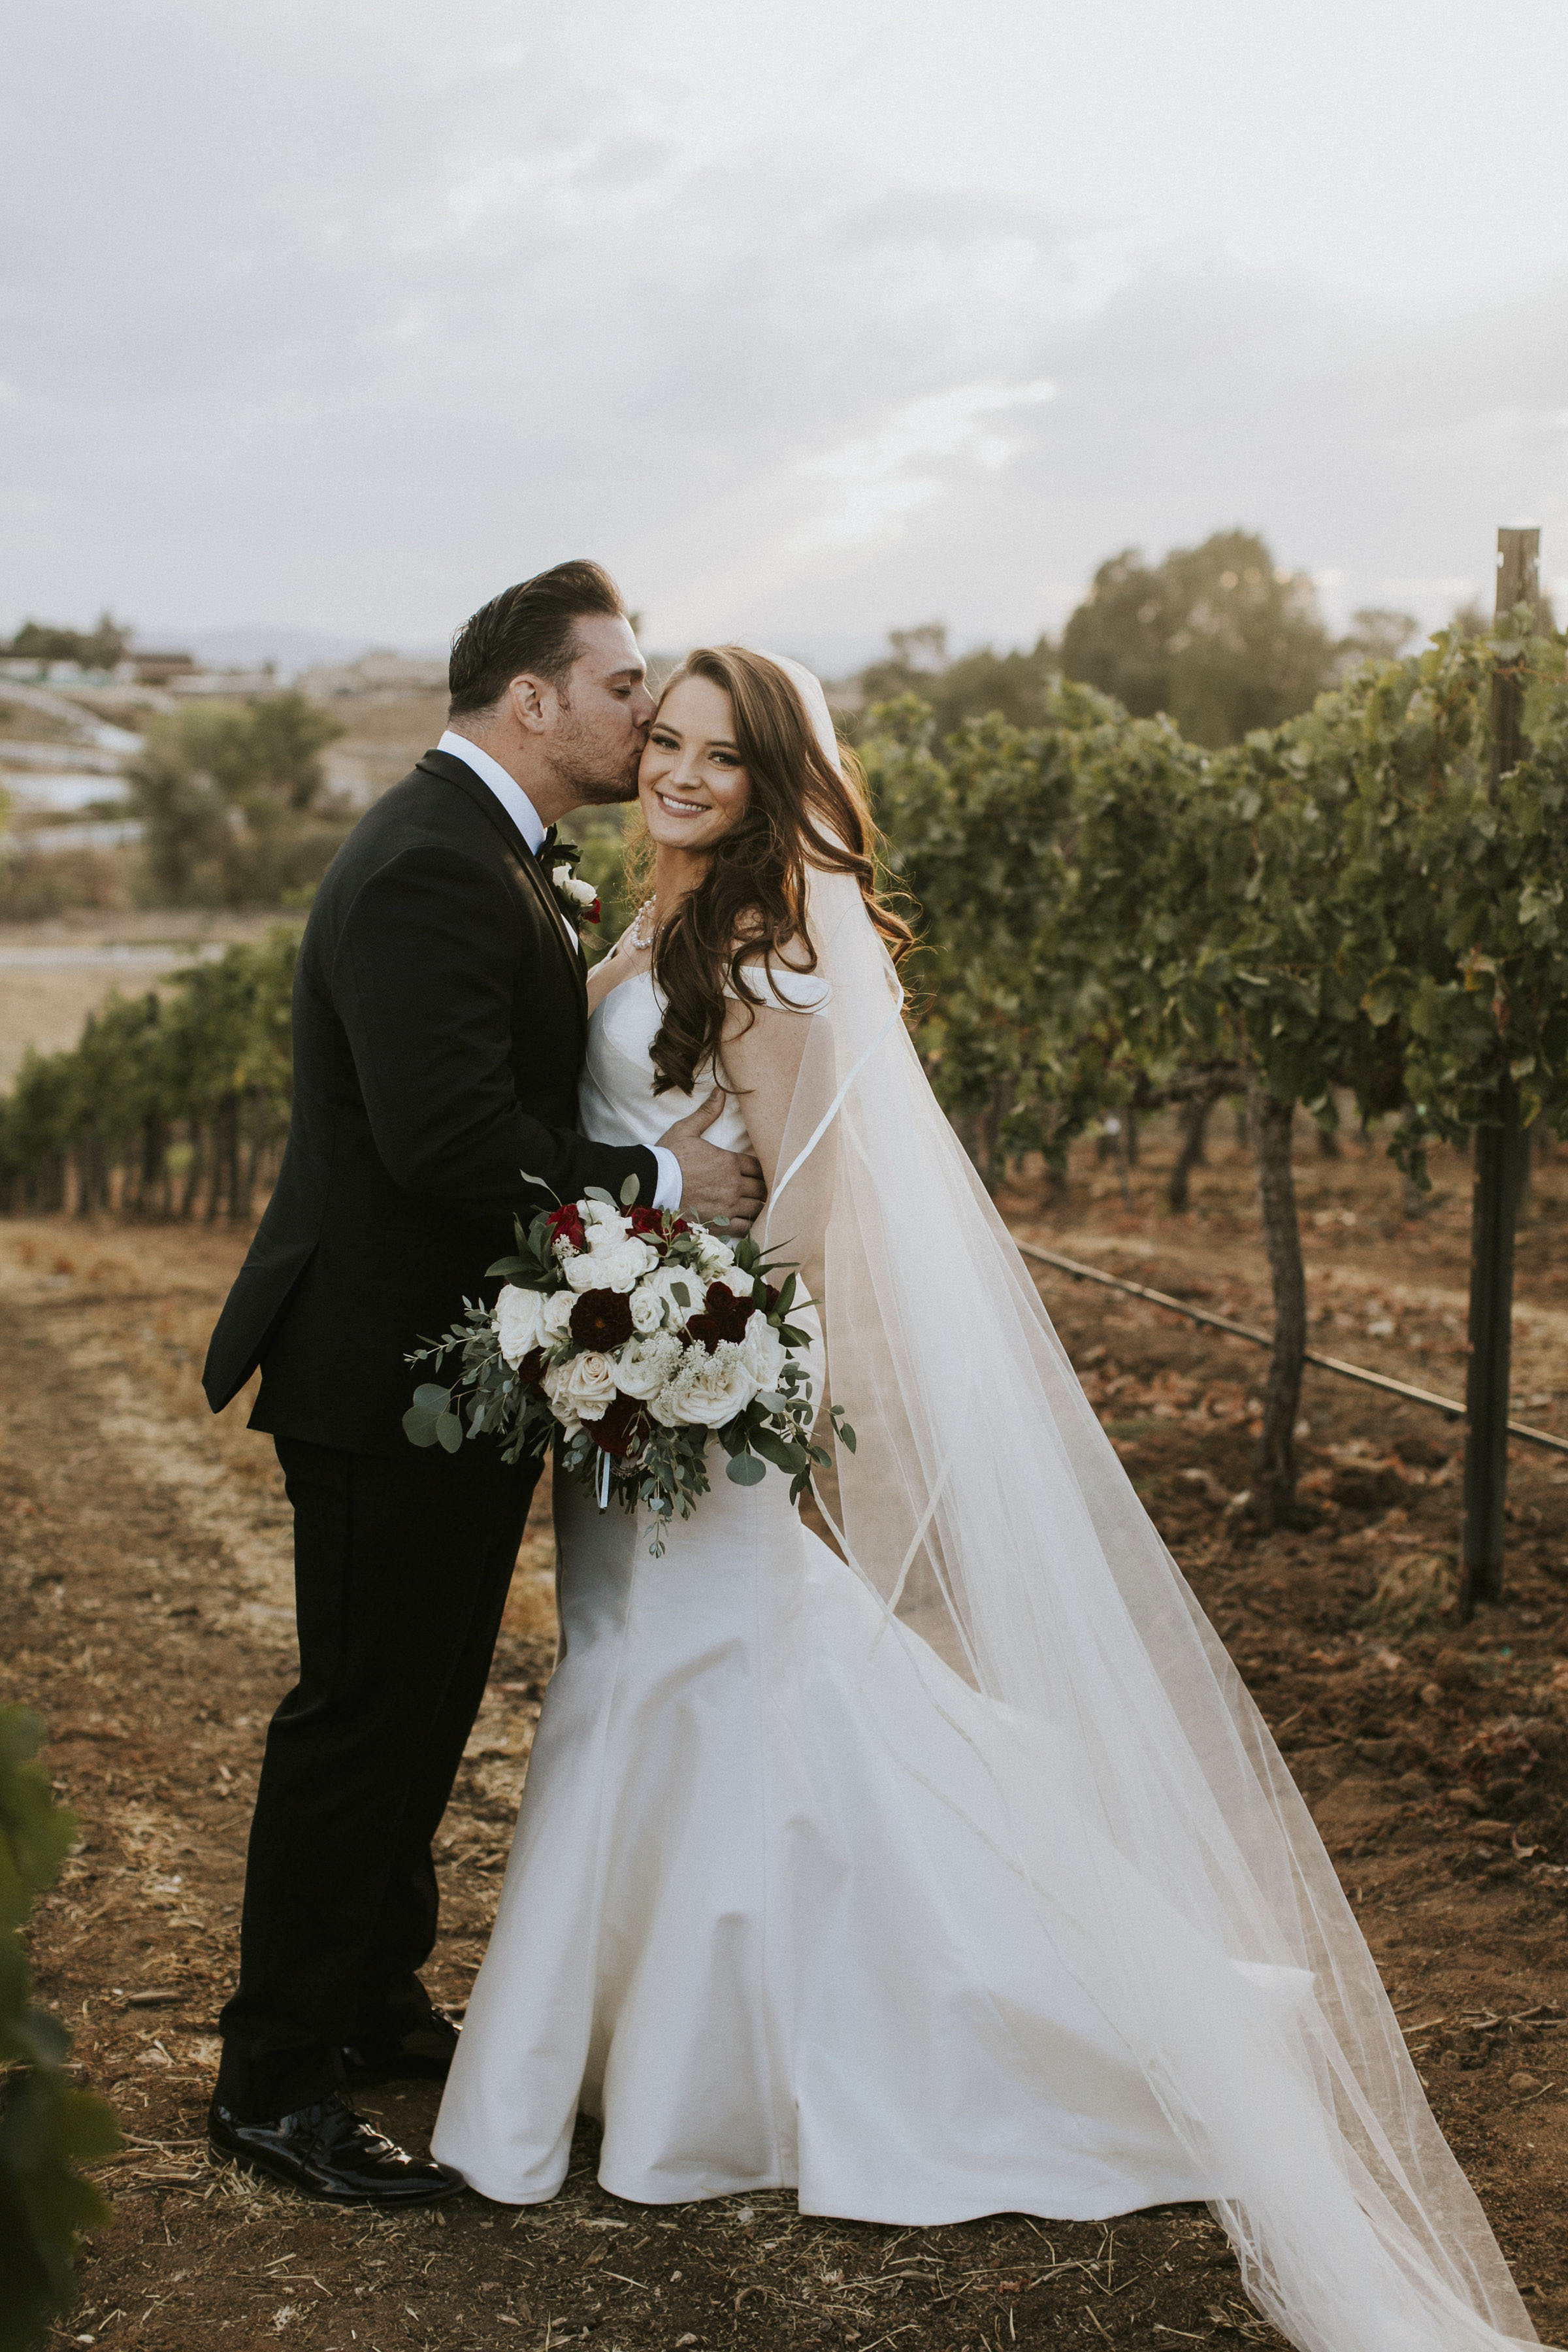 Domenica Beauty _ Hair and Makeup Artist _Wedding _ Temecula, CA _ Catherine and Darryl _ 25.JPG